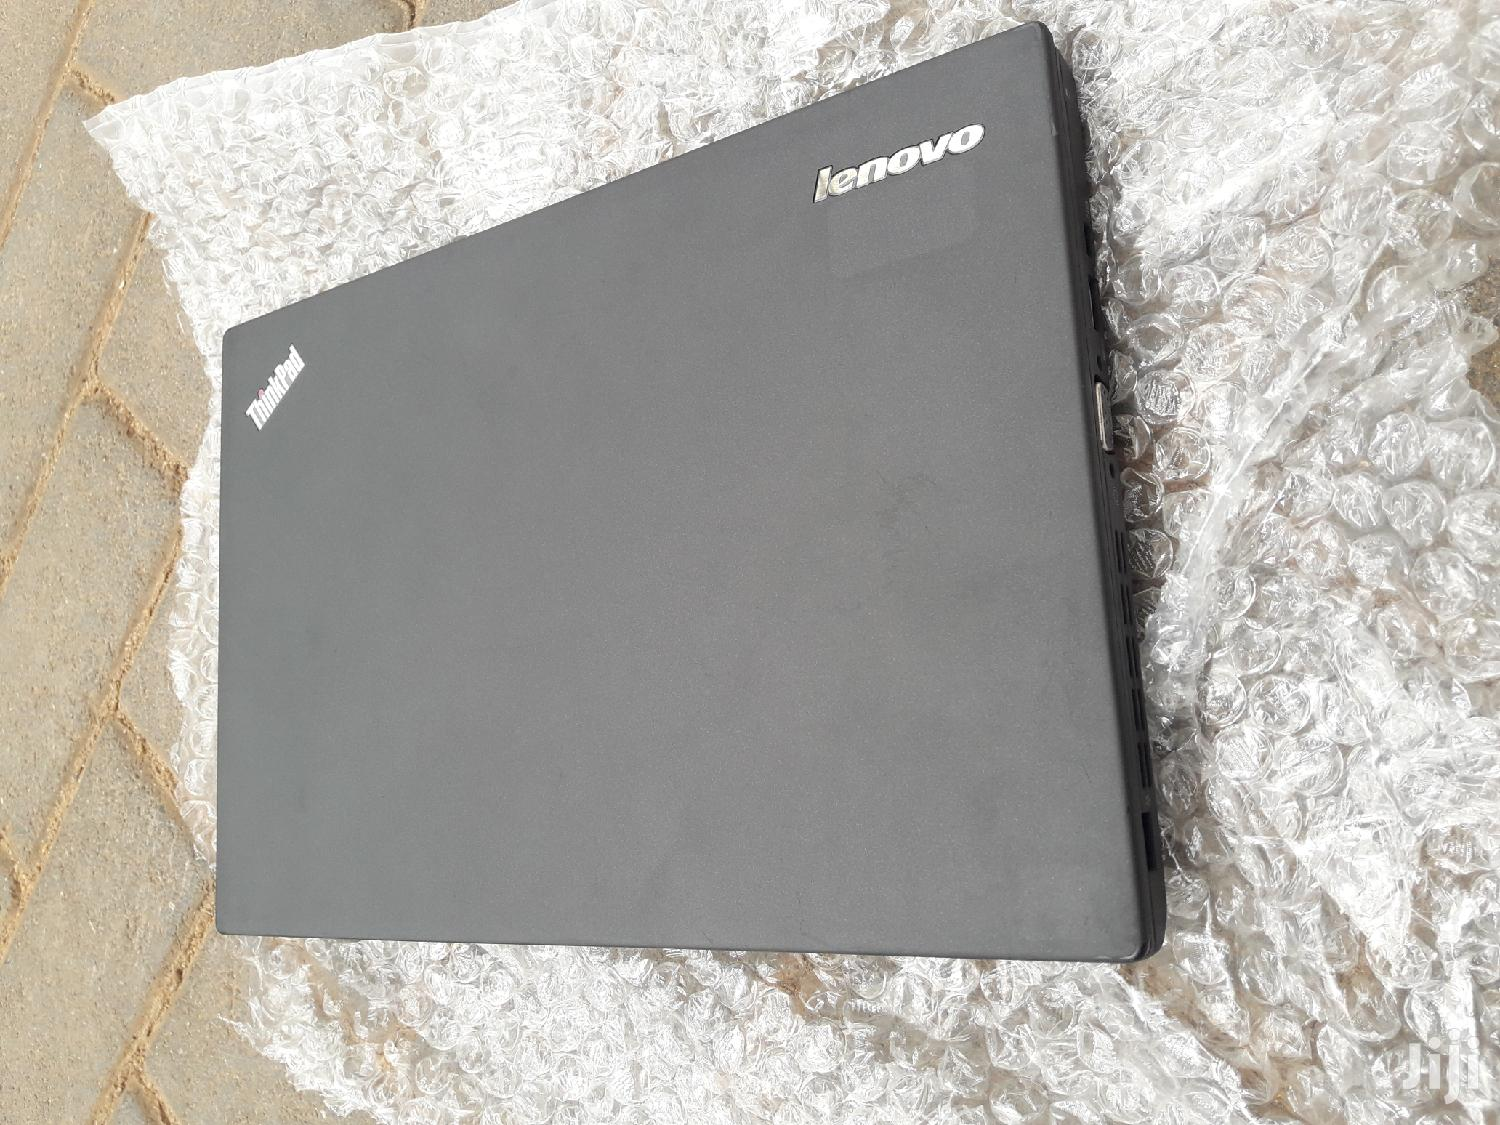 New Laptop Lenovo ThinkPad X240 4GB Intel Core i5 HDD 500GB | Laptops & Computers for sale in Kampala, Central Region, Uganda